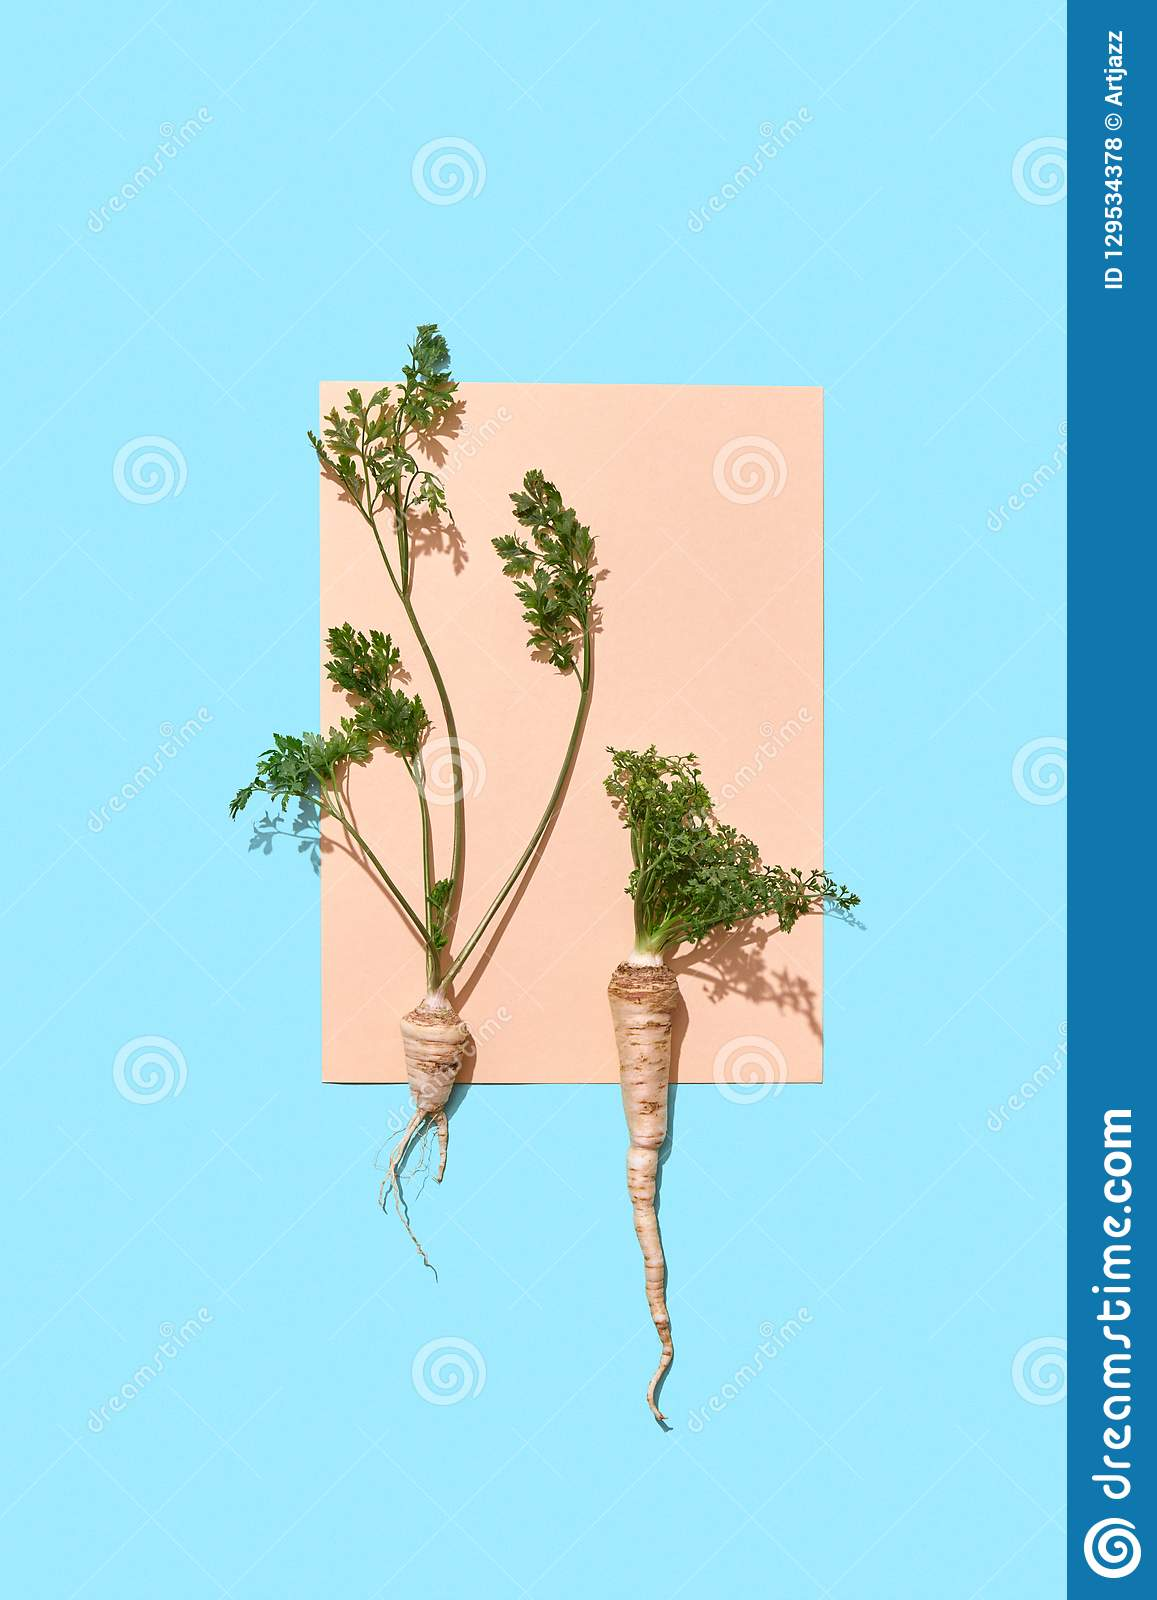 Parsley Roots With Green Stems Decorate A Piece Of Paper ...